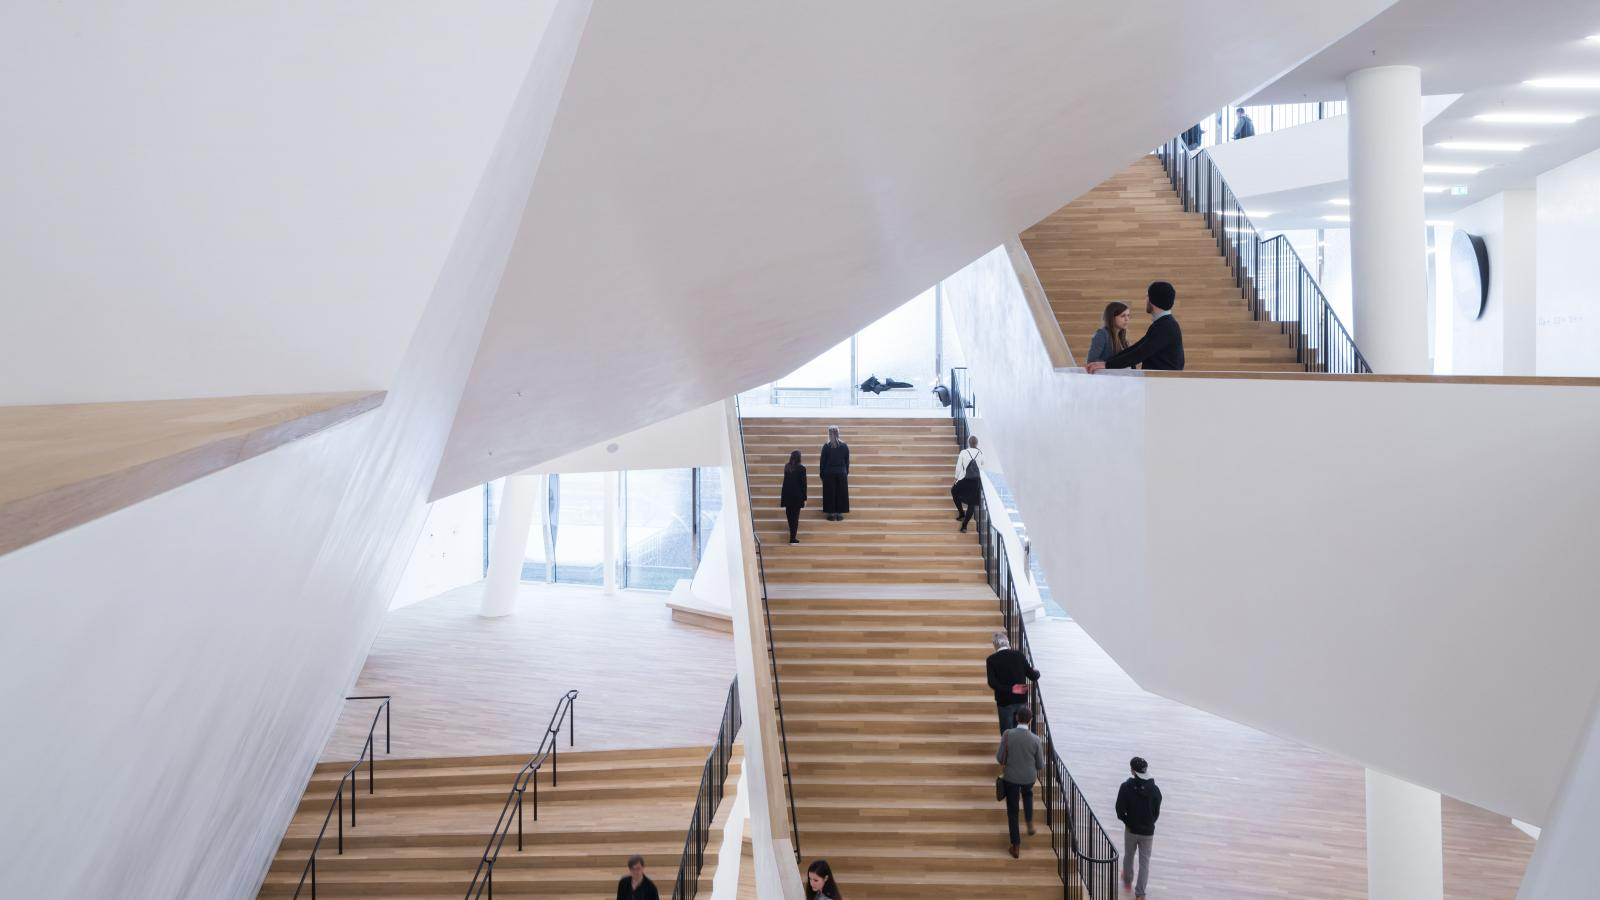 Foyer of the Elbphilharmonie's Grand Hall